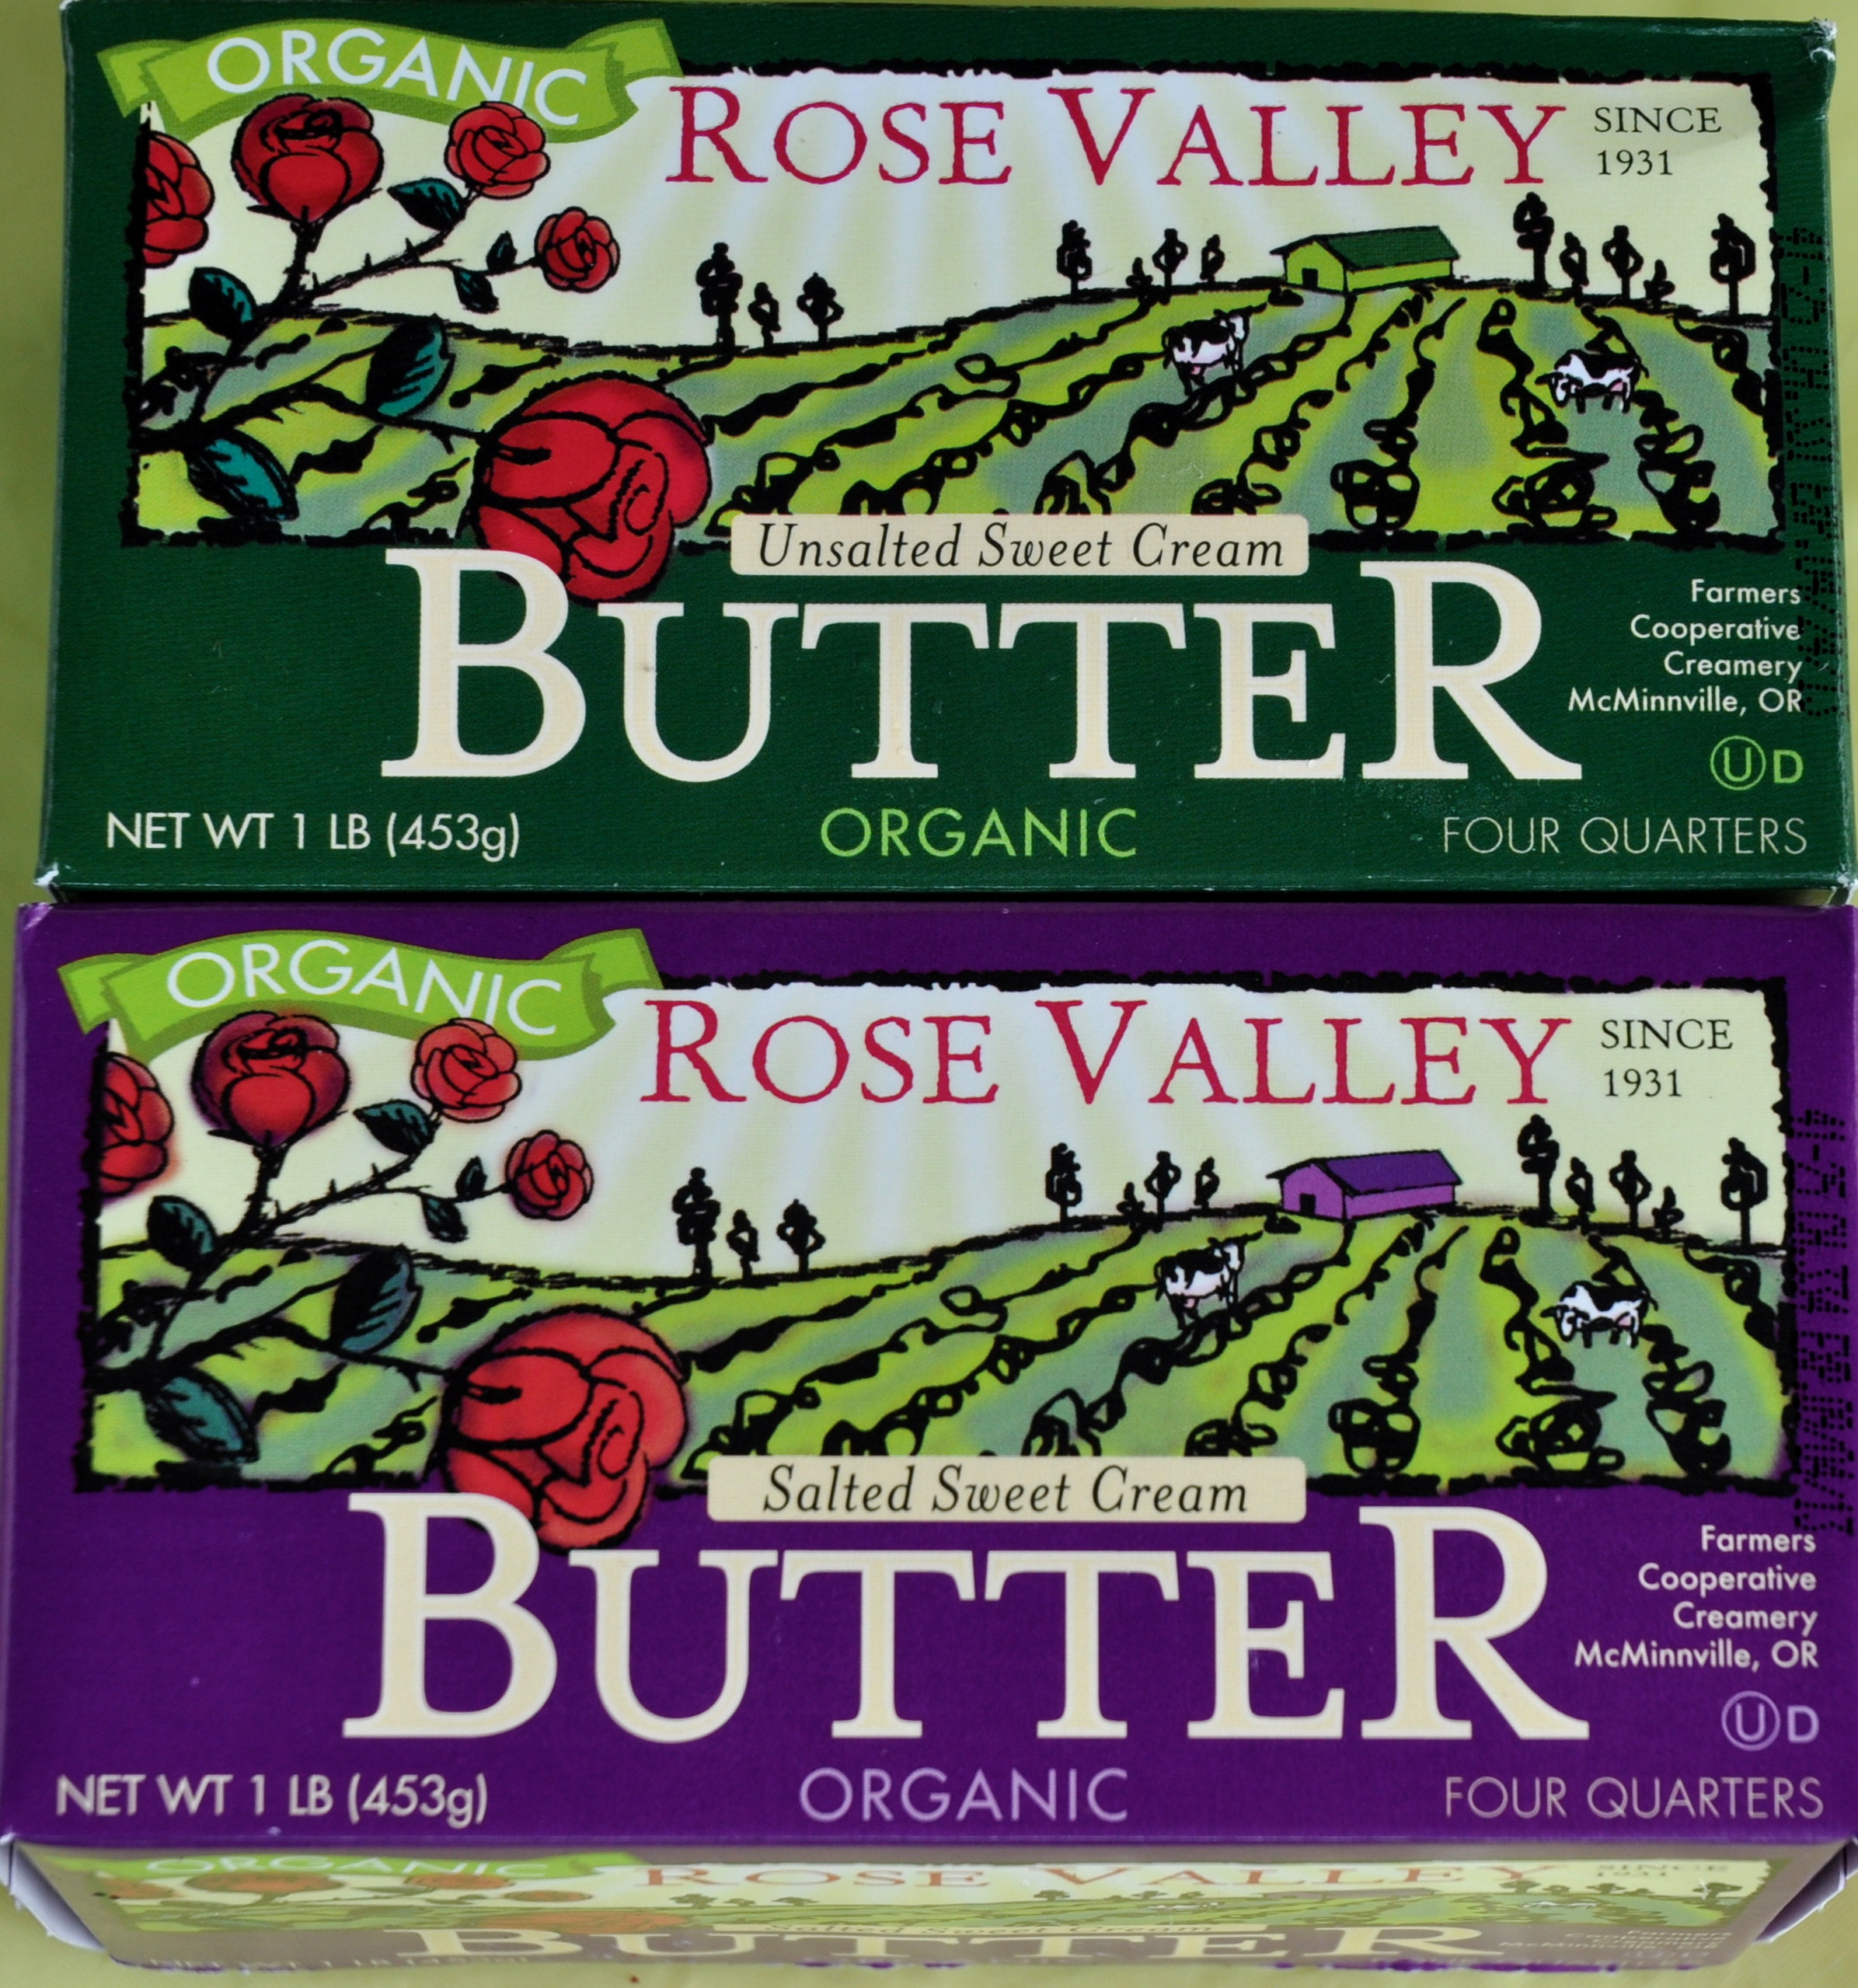 Butter from Rosecrest Farm. Photo copyright 2013 by Zachary D. Lyons.